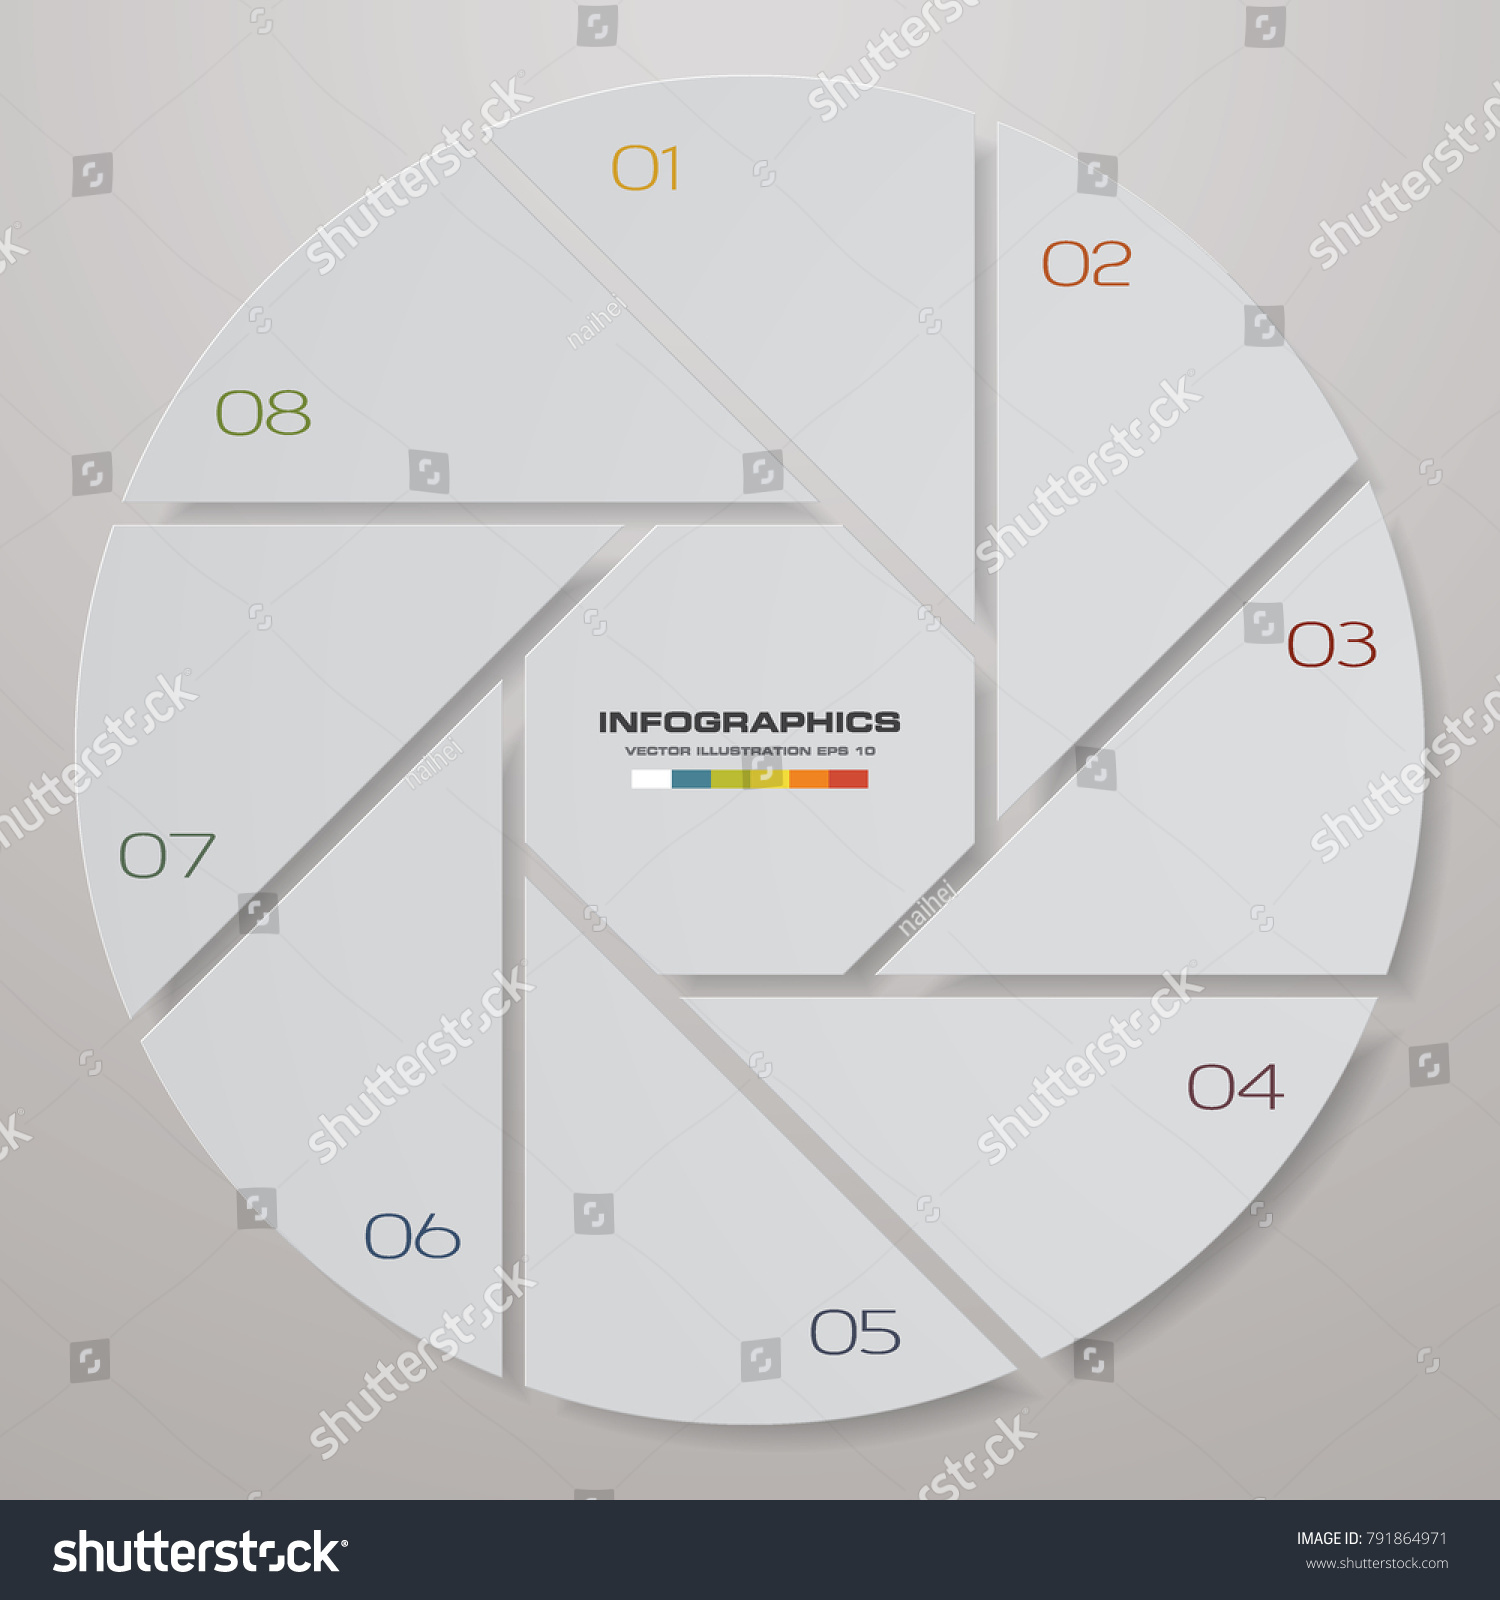 Animated pie chart jquery choice image free any chart examples jquery animated pie chart images free any chart examples jquery animated pie chart image collections free nvjuhfo Images